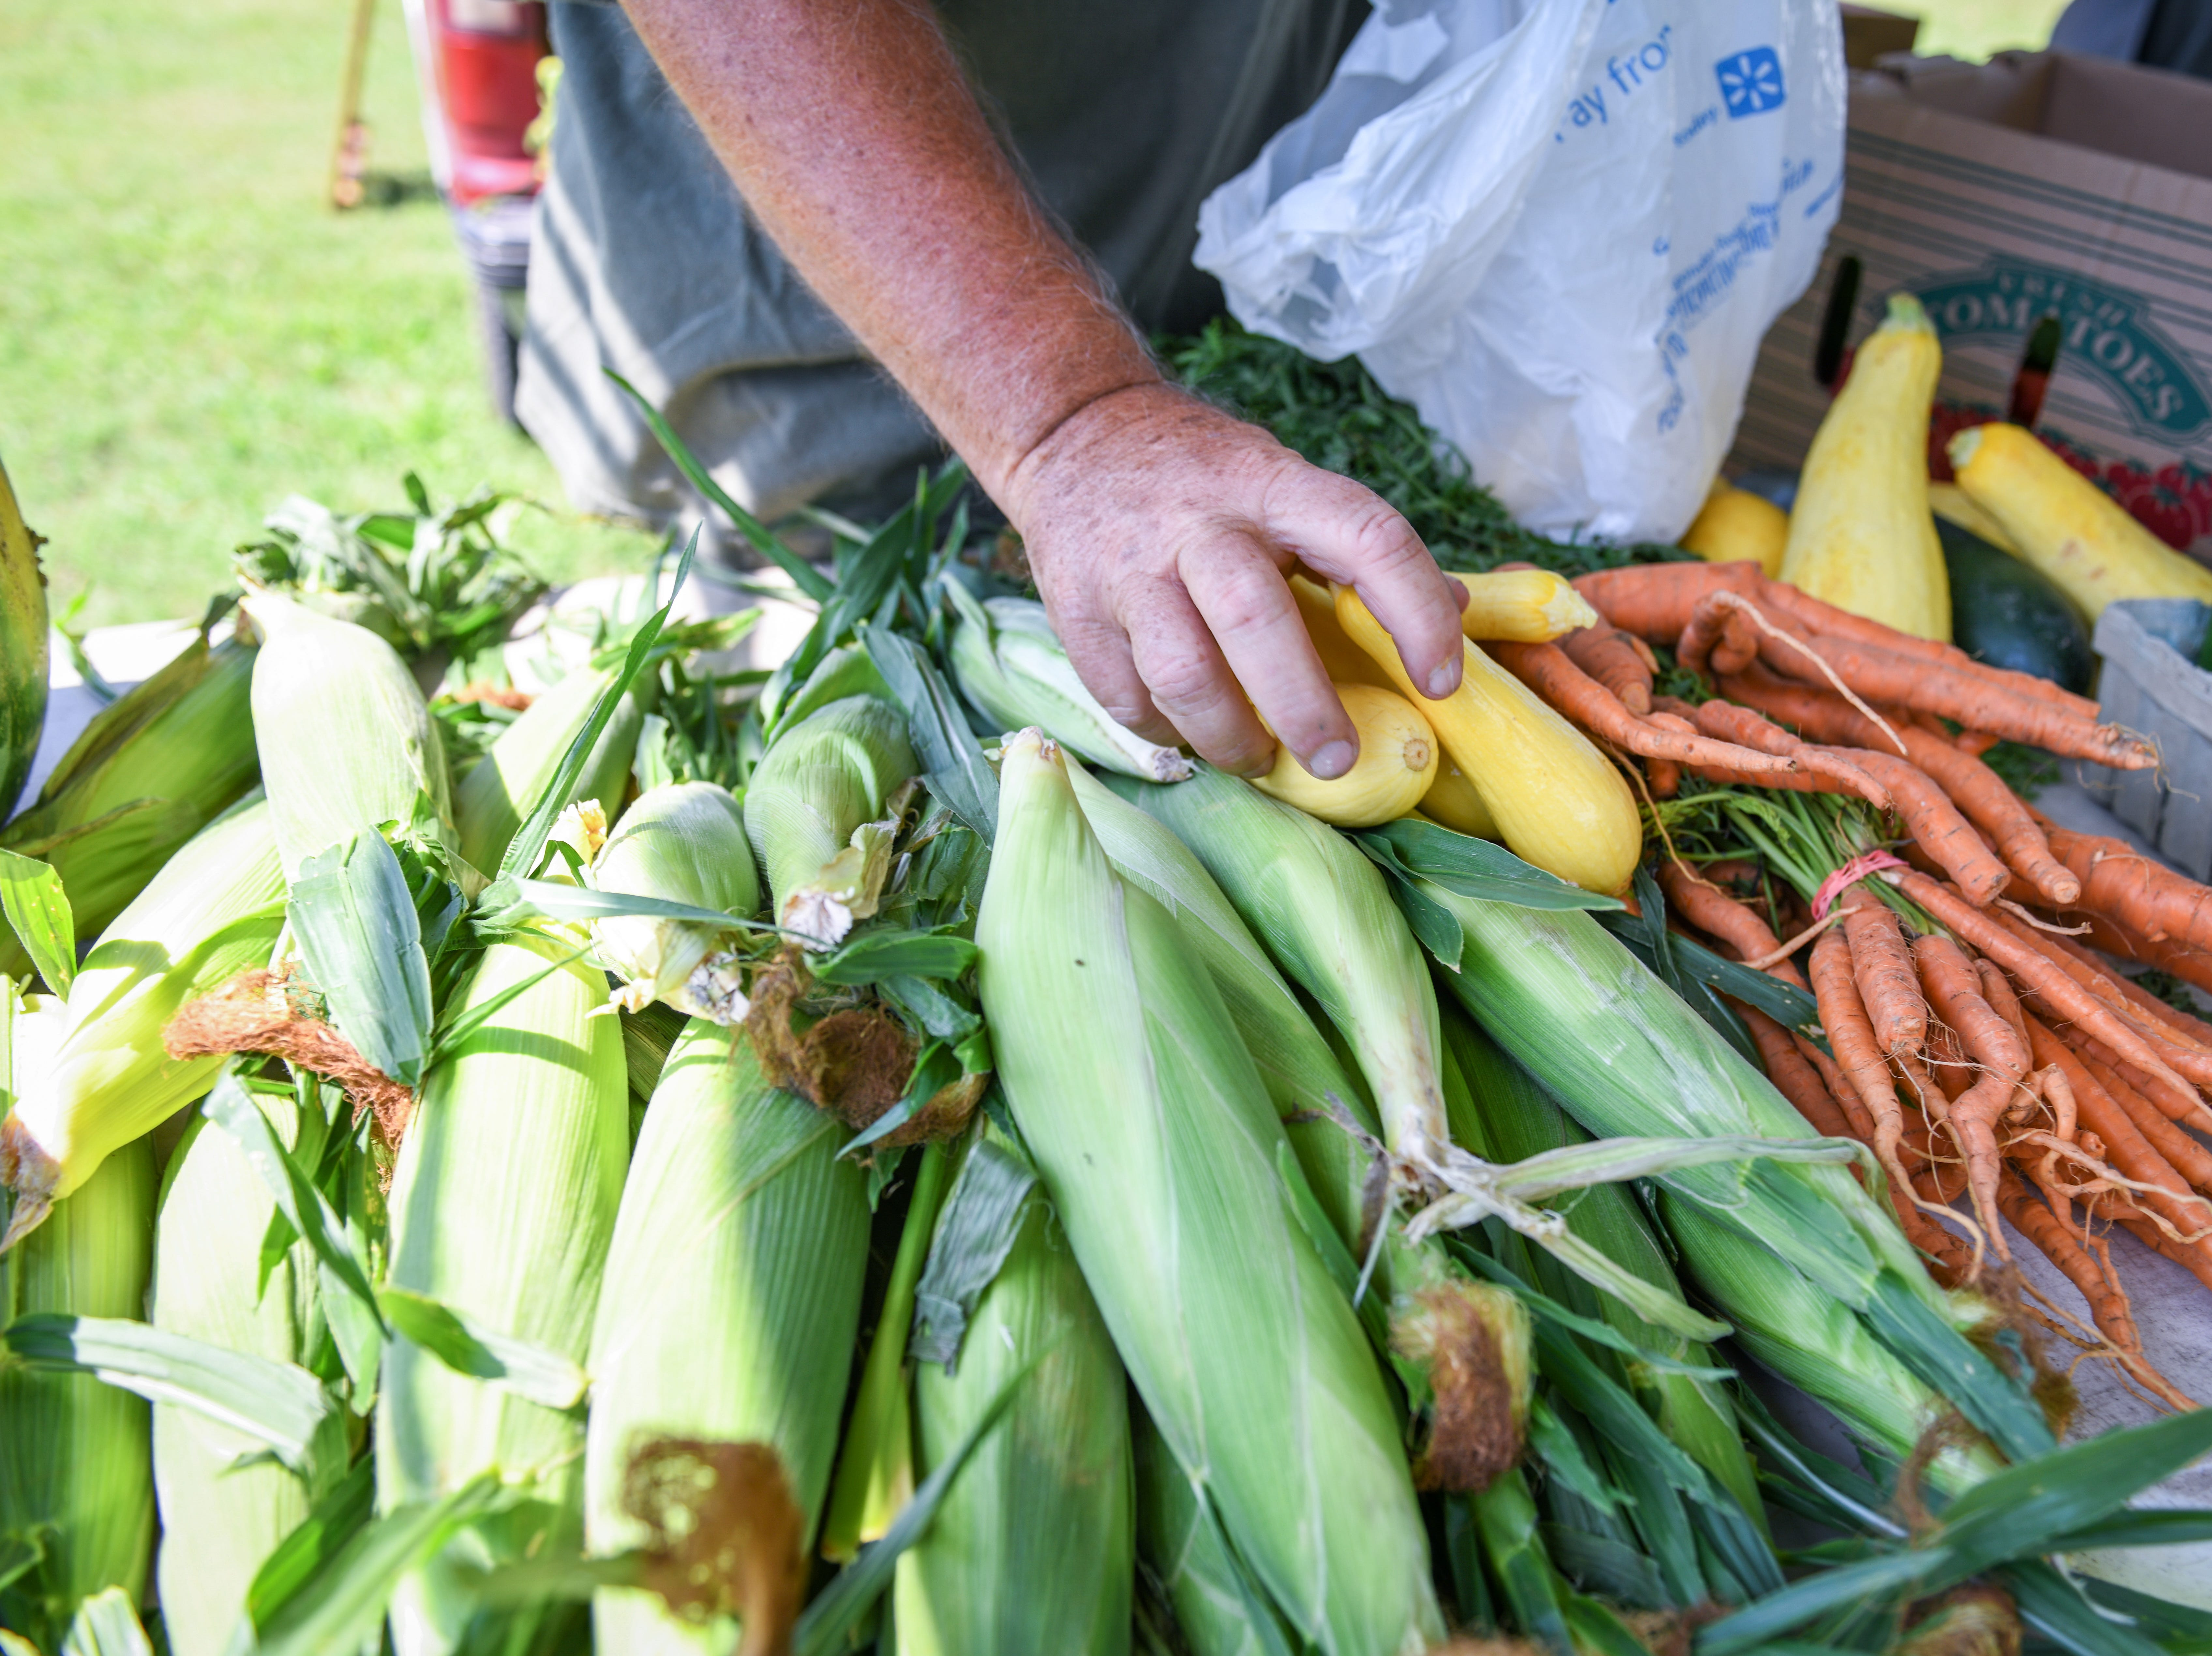 Ken Robinson picks out squash for a customer at the Princess Anne farmers market on August 9. He grows most of the produce he sells on a family farm in Mardela.